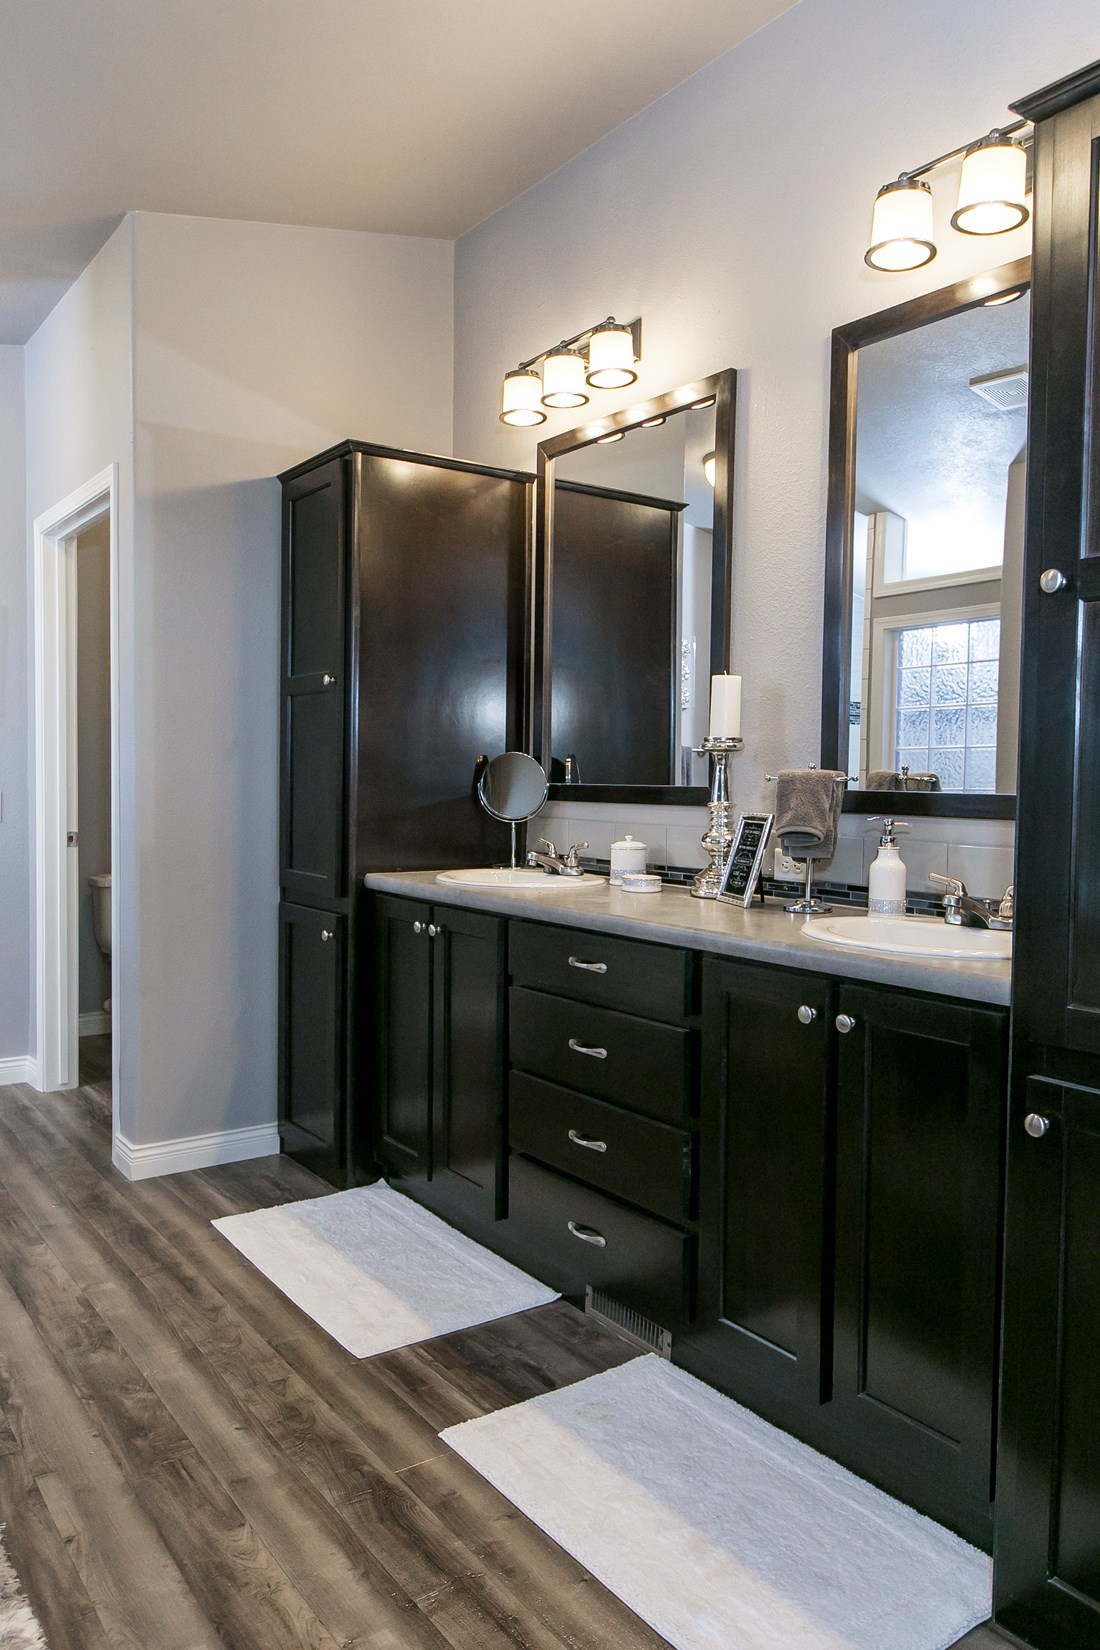 The GSP643K PLATINUM SERIES Master Bathroom. This Manufactured Mobile Home features 3 bedrooms and 2 baths.